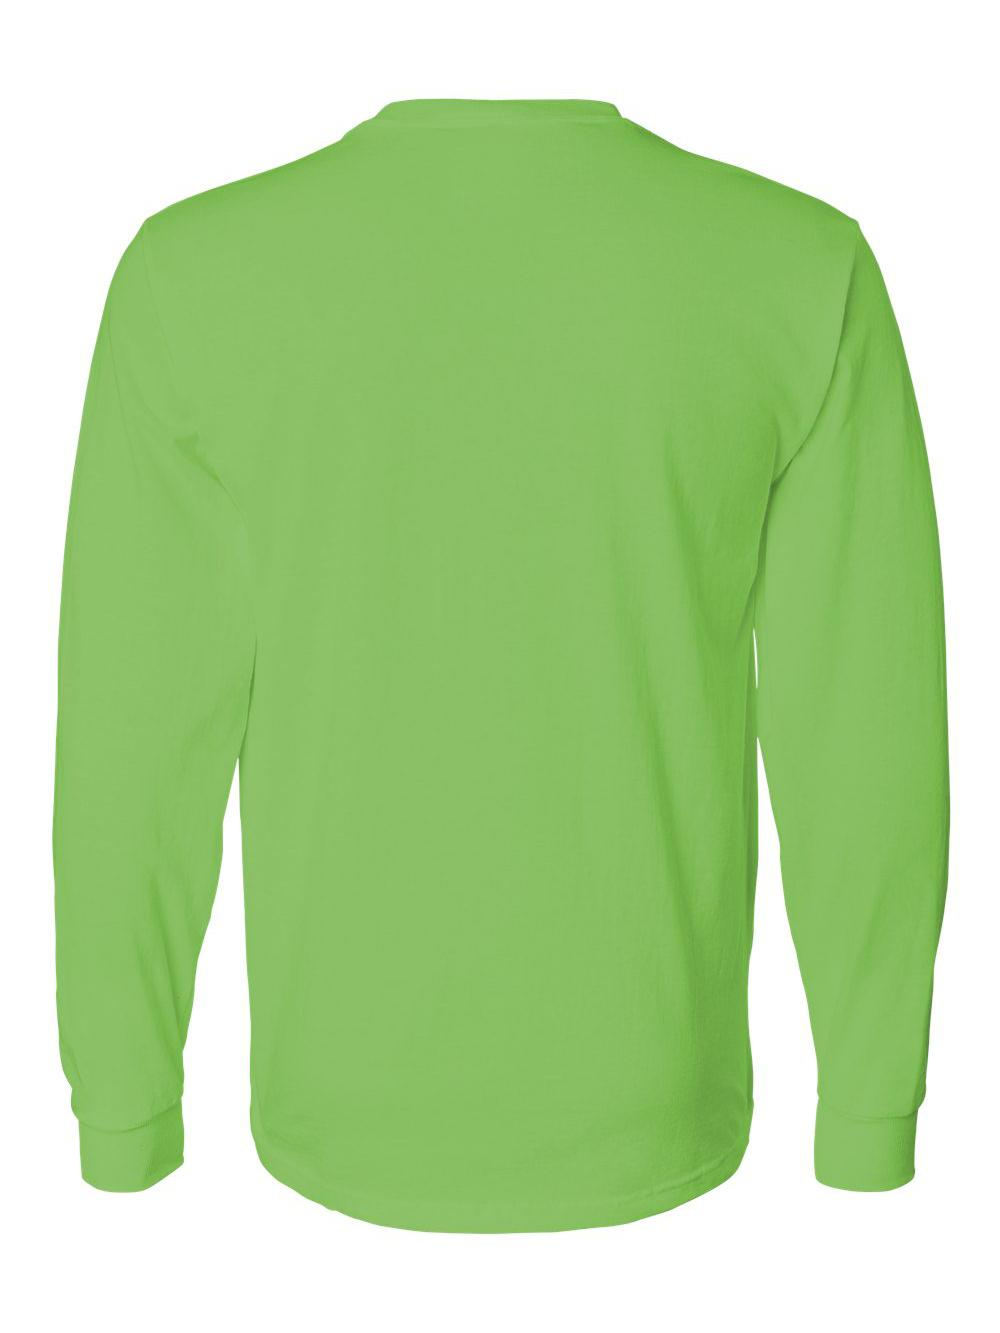 Fruit-of-the-Loom-HD-Cotton-Long-Sleeve-T-Shirt-4930R thumbnail 46